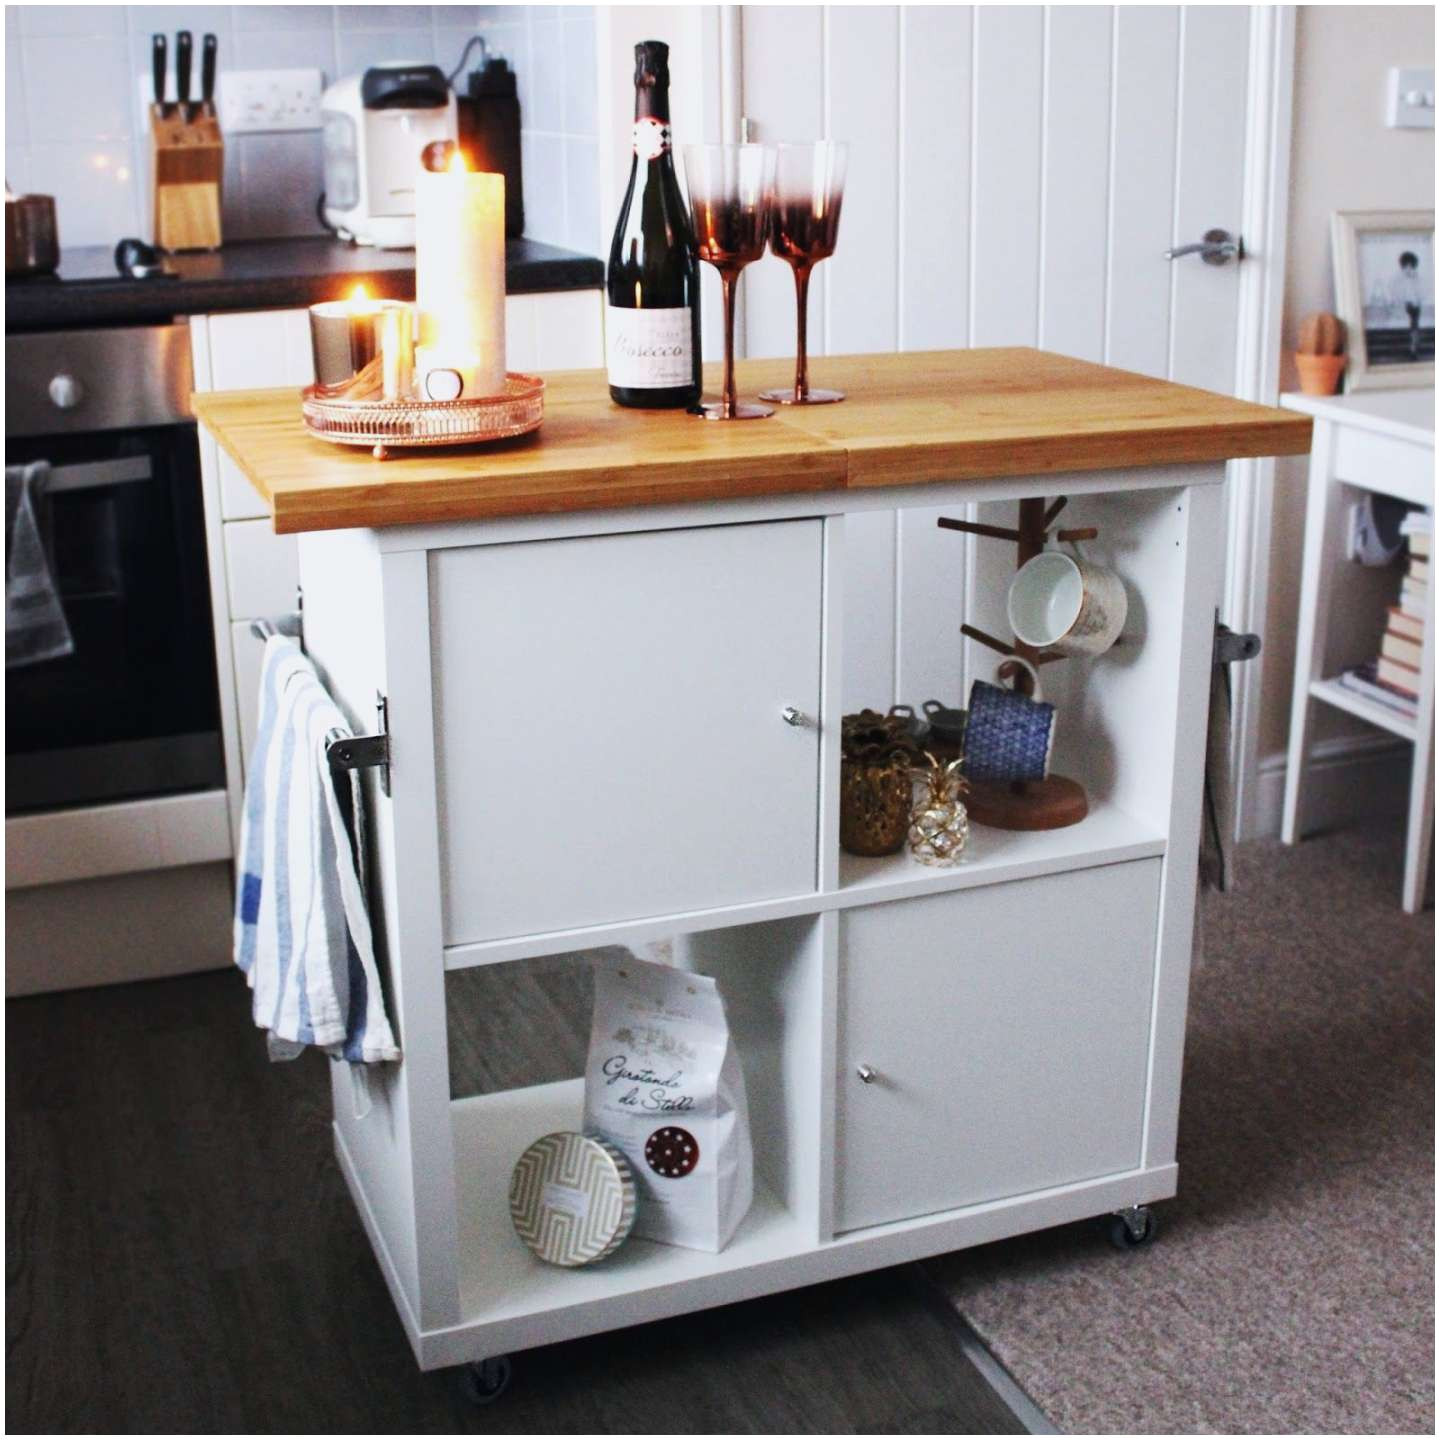 unique portable island ikea stenstorp ikea 0d kitchen island decoration pour option ikea planner cuisine